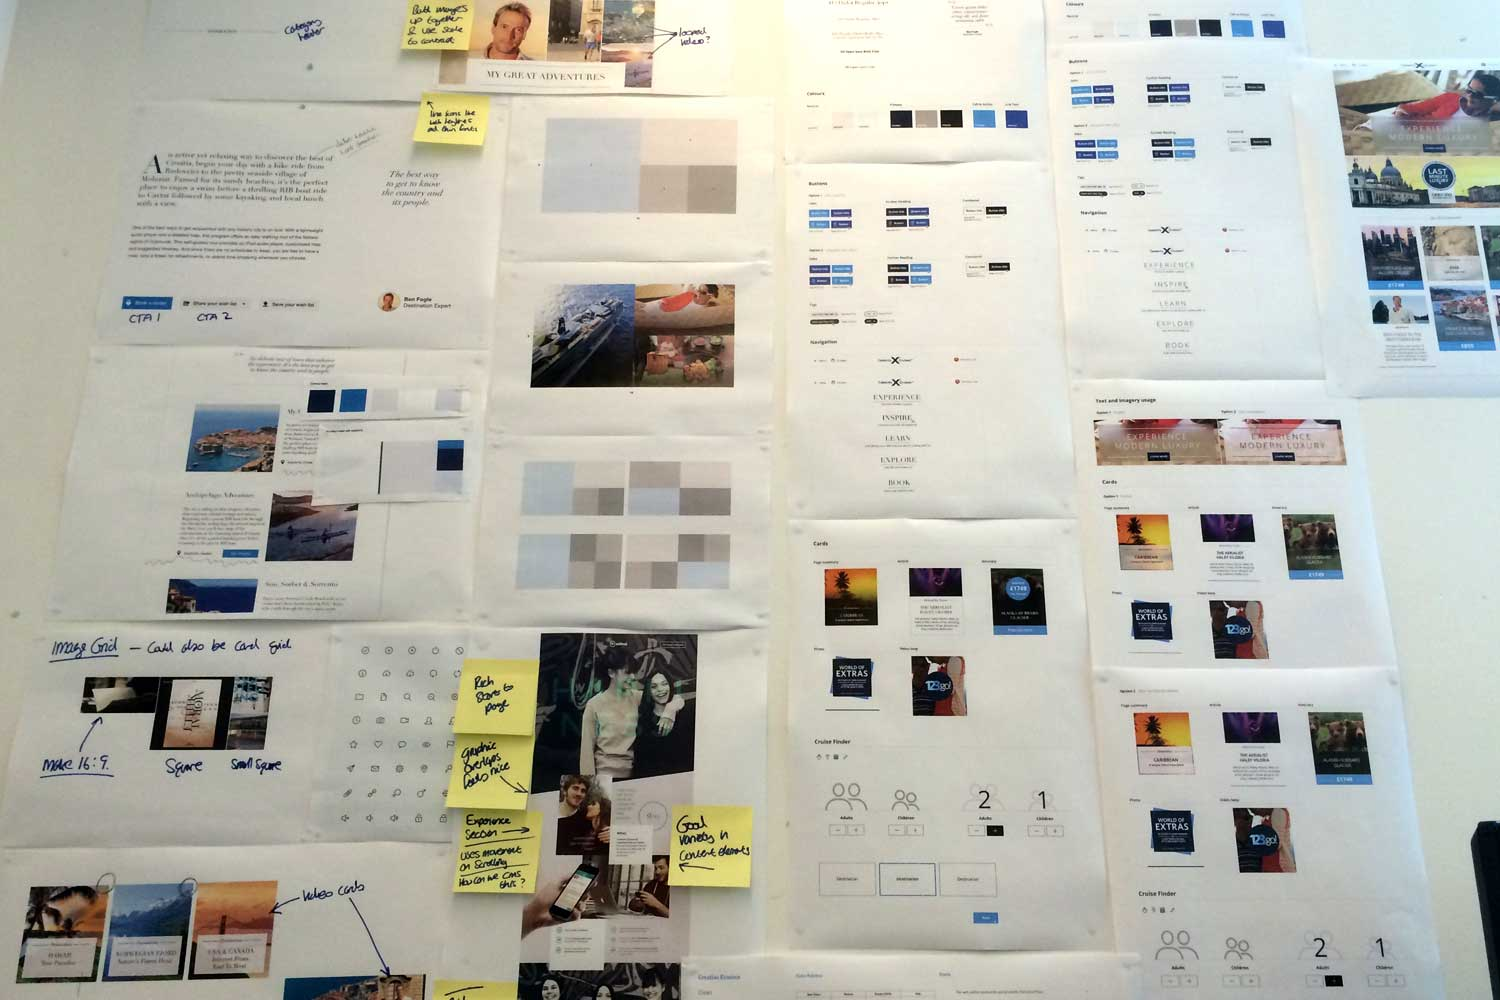 Building up the visual design system